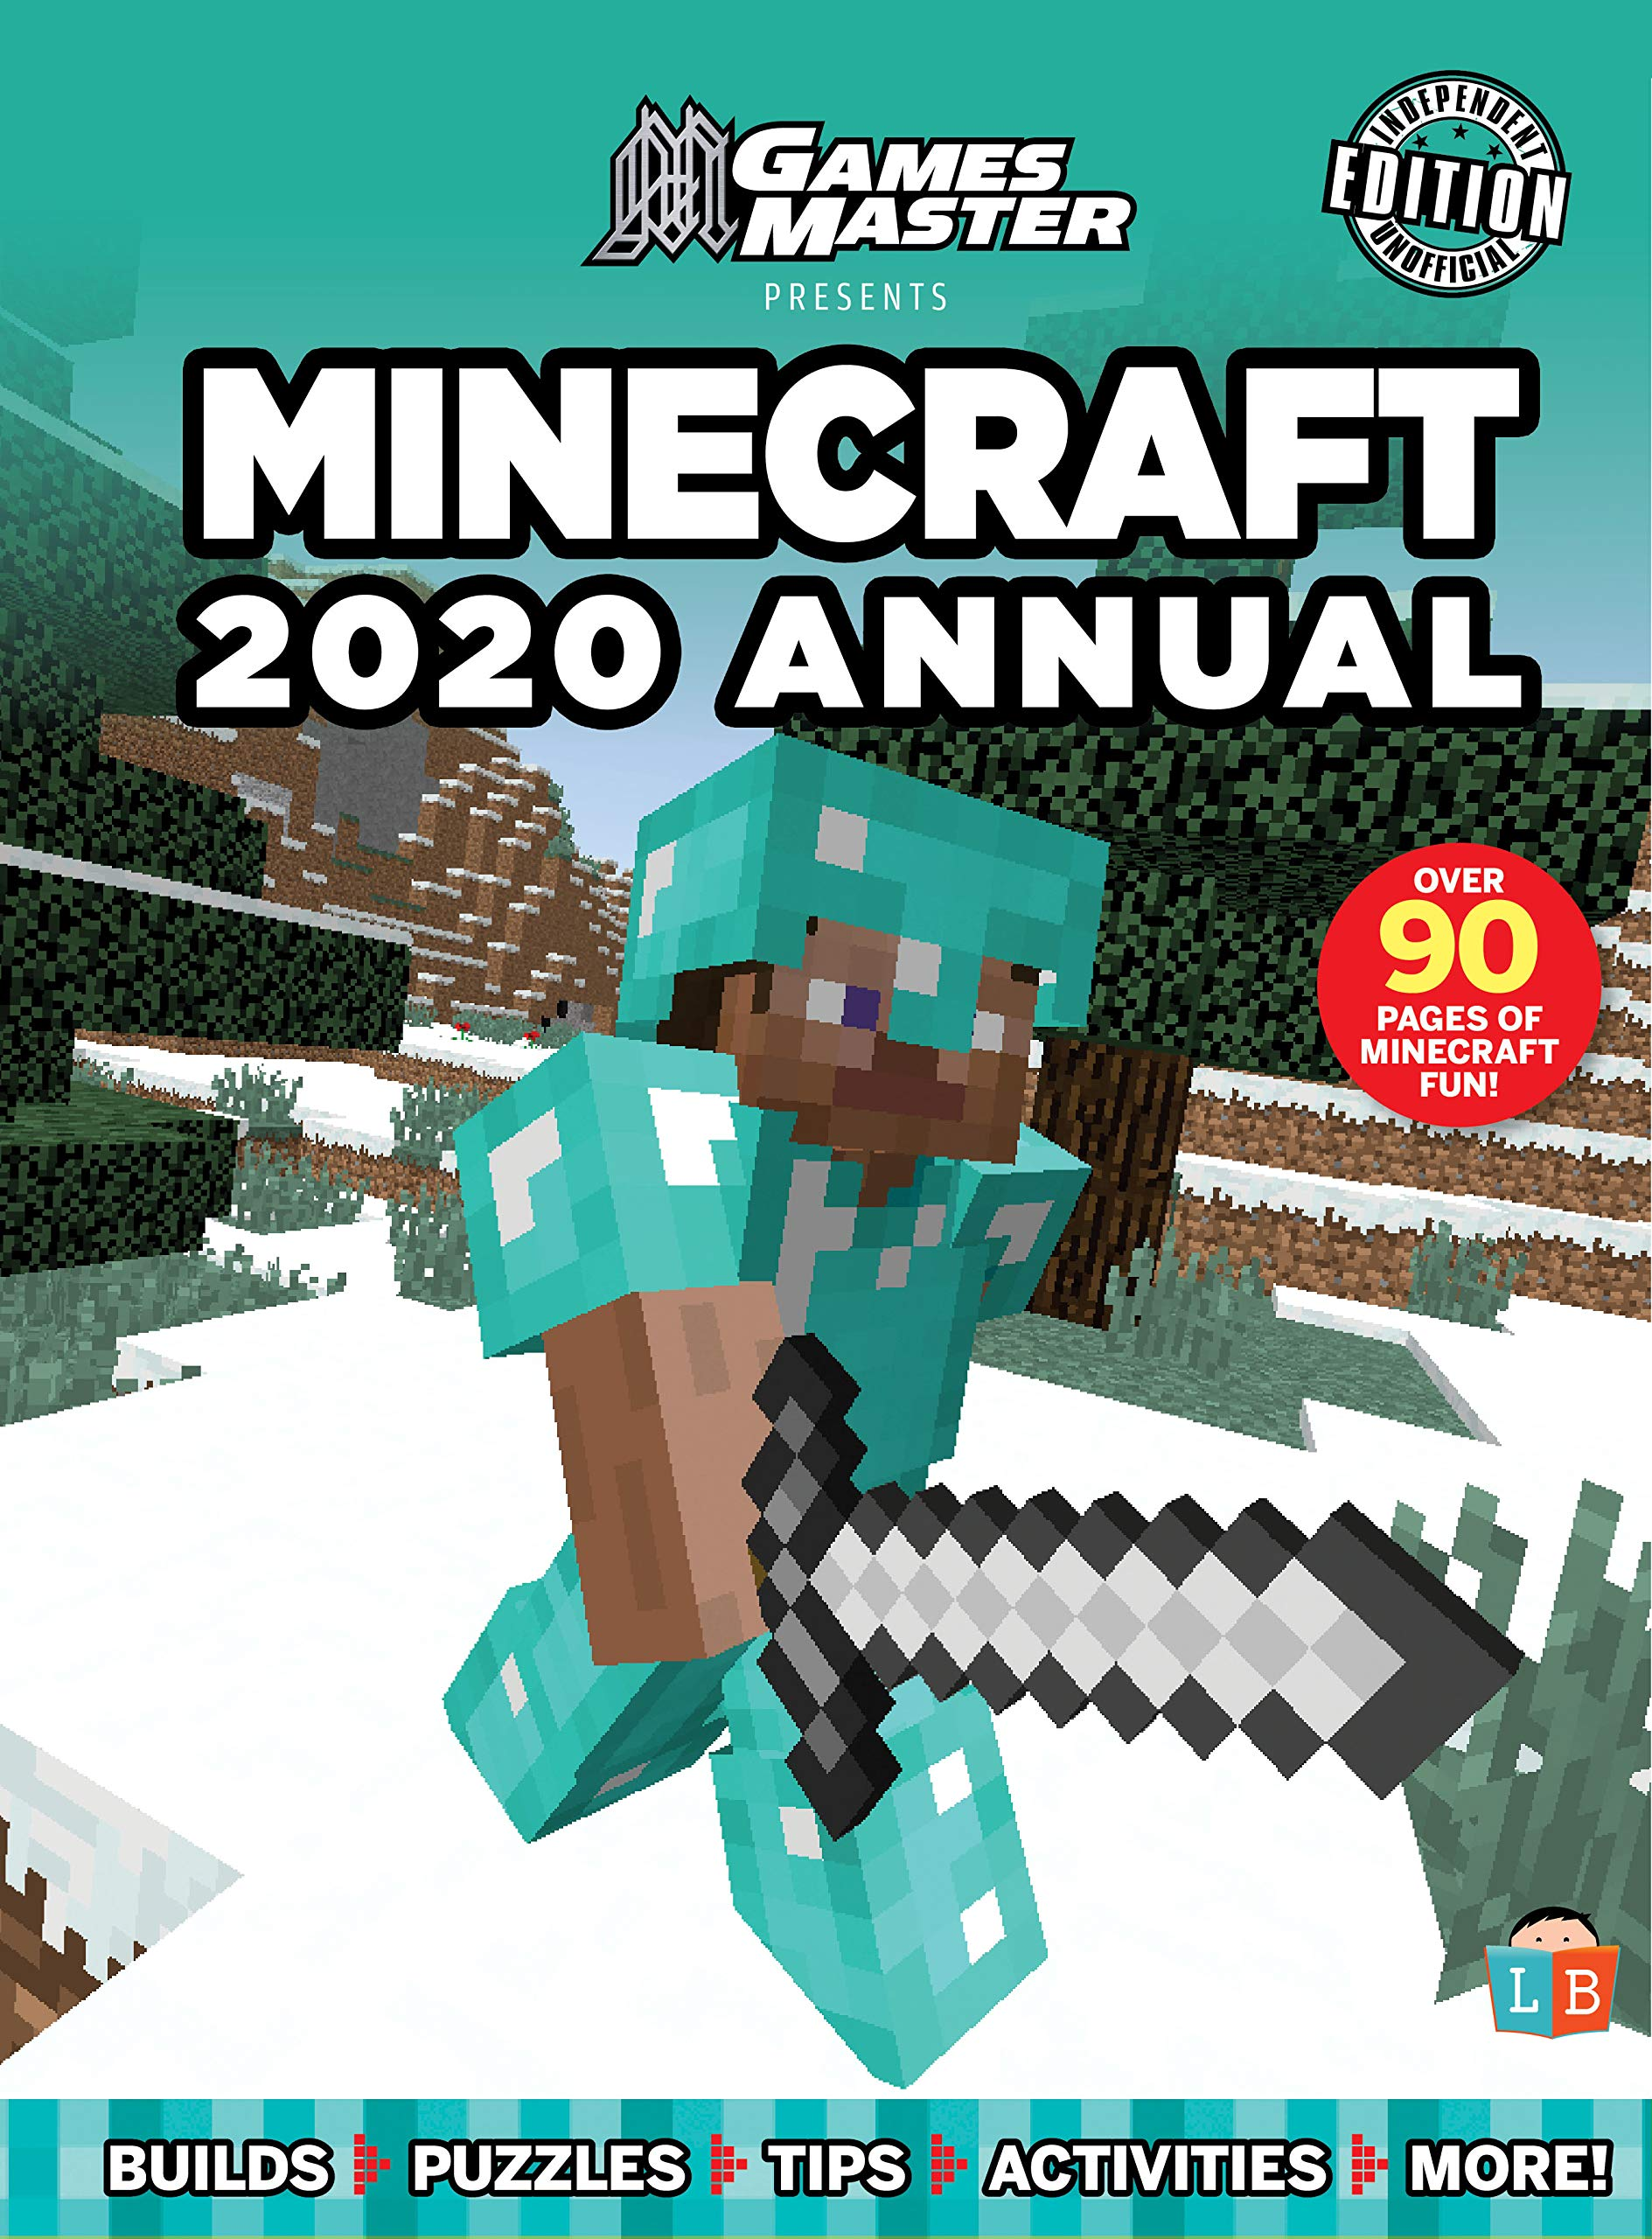 Top Selling Games 2020.Games Master Presents Minecraft 2020 Annual Little Brother